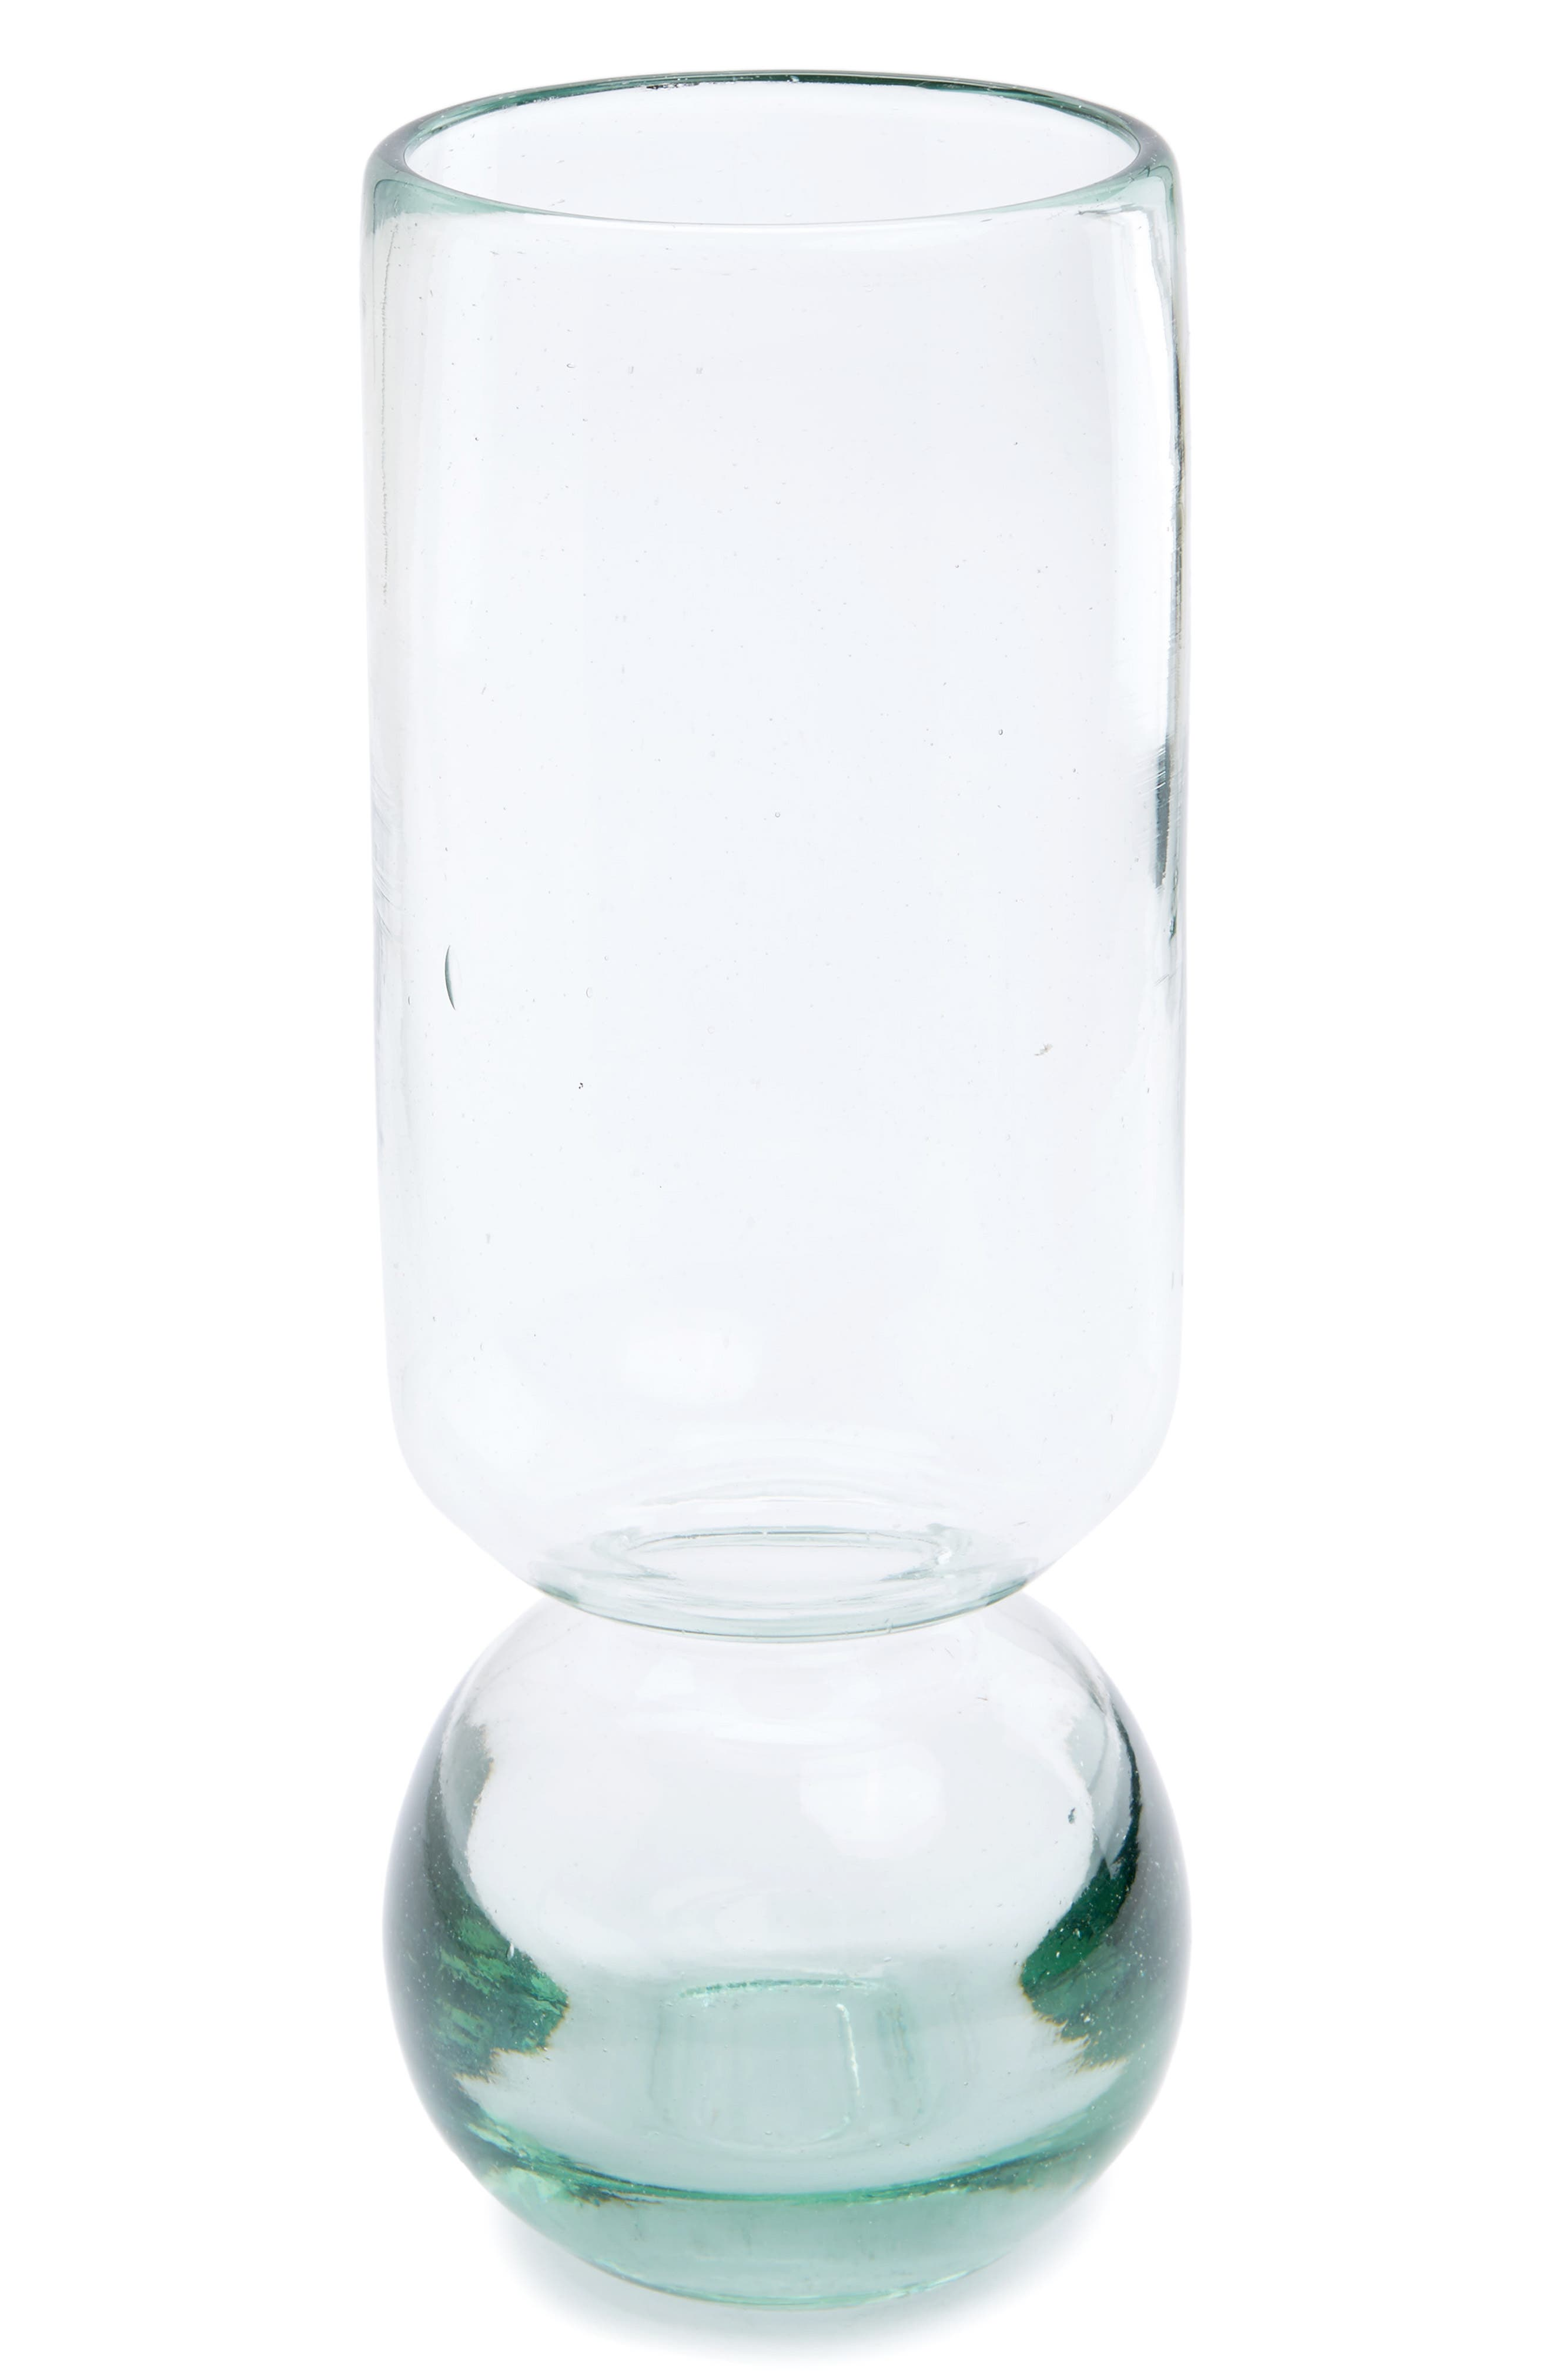 Homart Tall Recycled Glass Vase